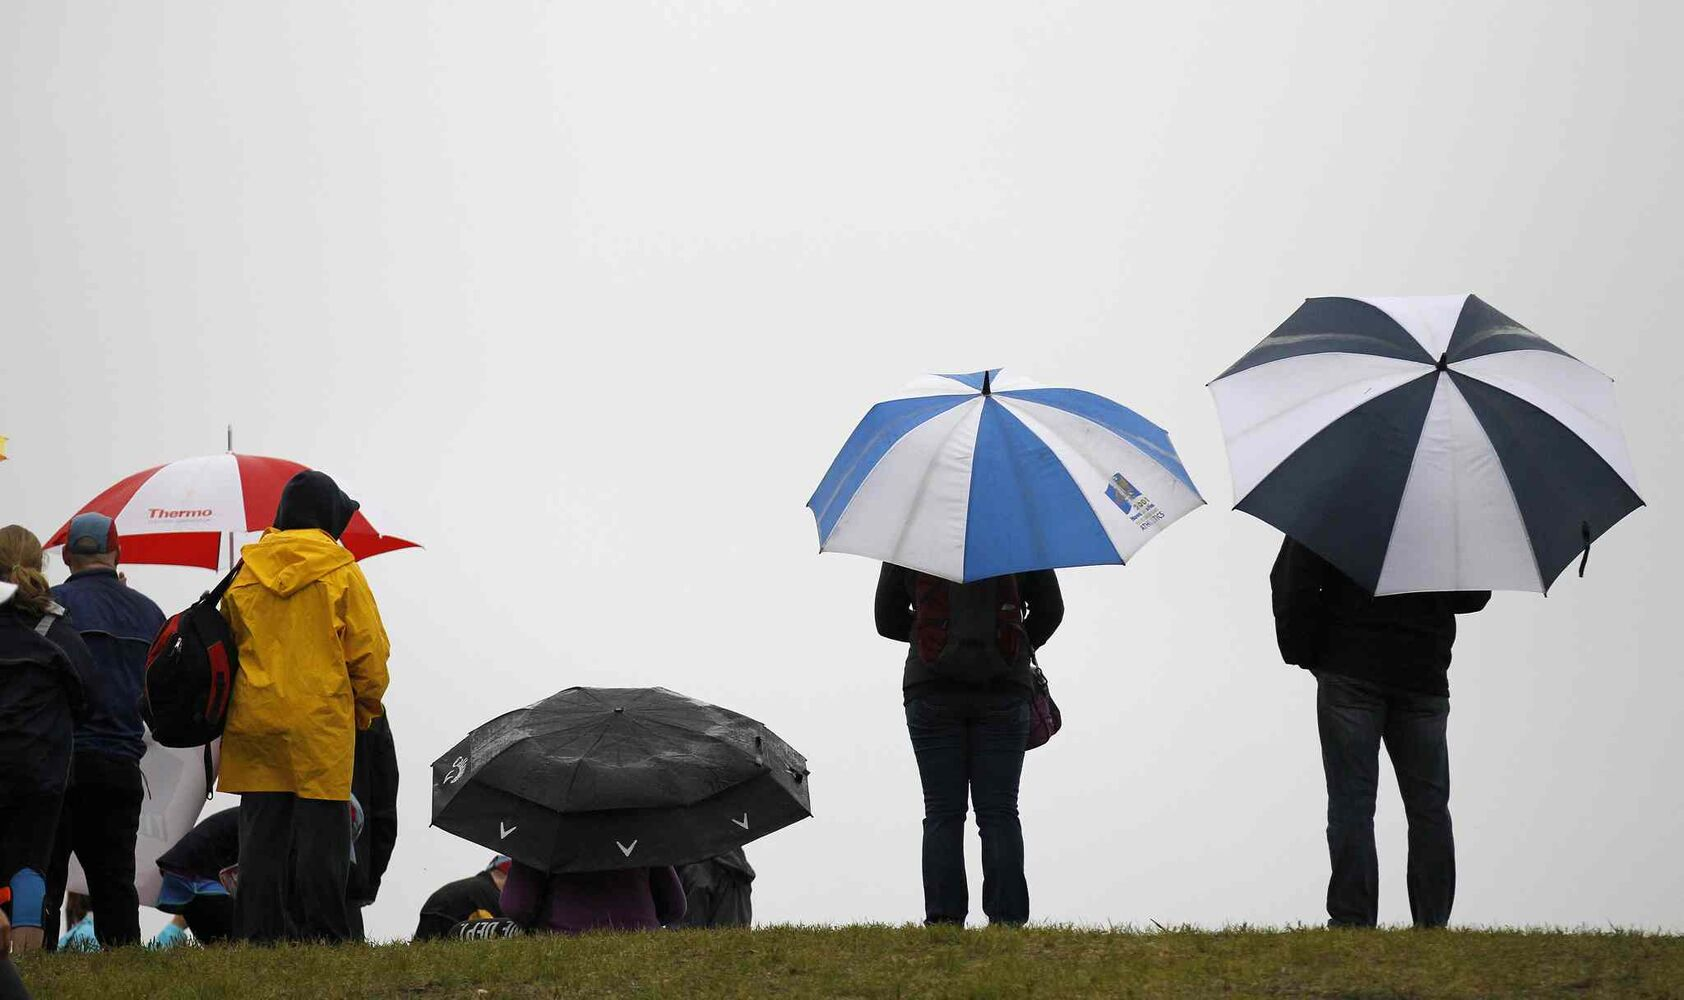 Spectators and supporters with umbrella's during the Manitoba Marathon at the University of Manitoba Sunday. (Trevor Hagan / Winnipeg Free Press)